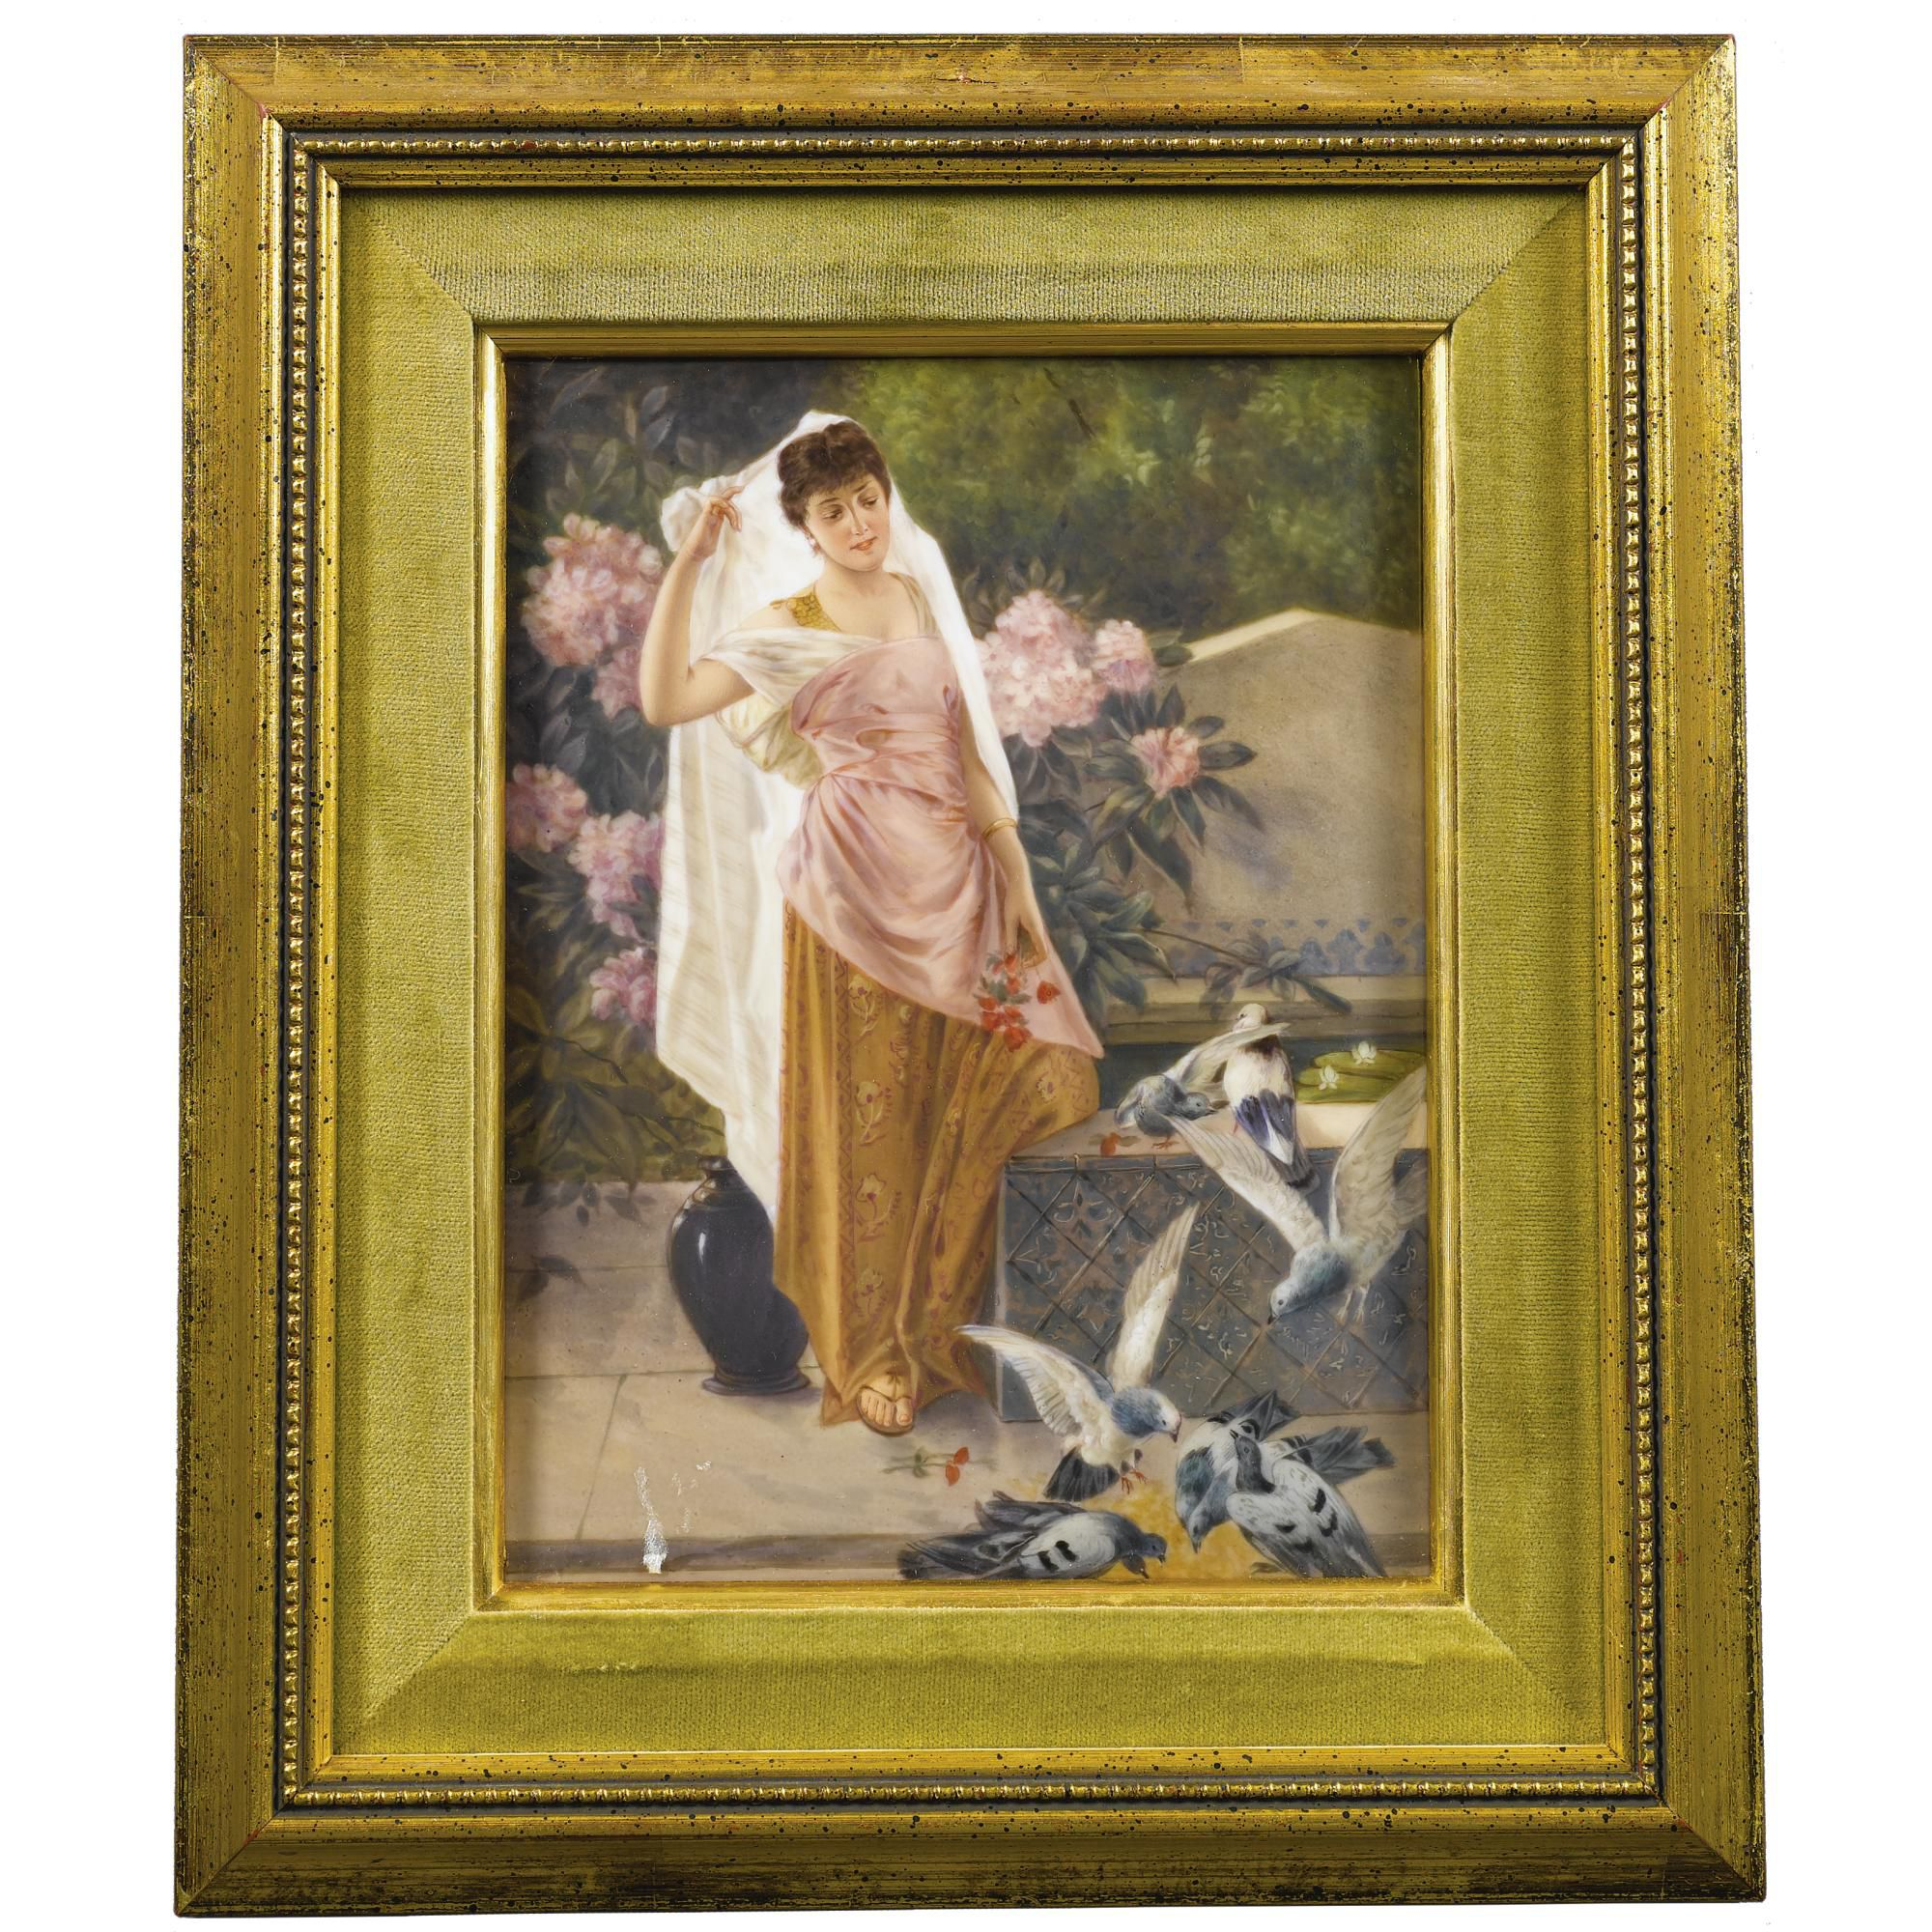 A KPM porcelain painted plaque of a Greek maiden with